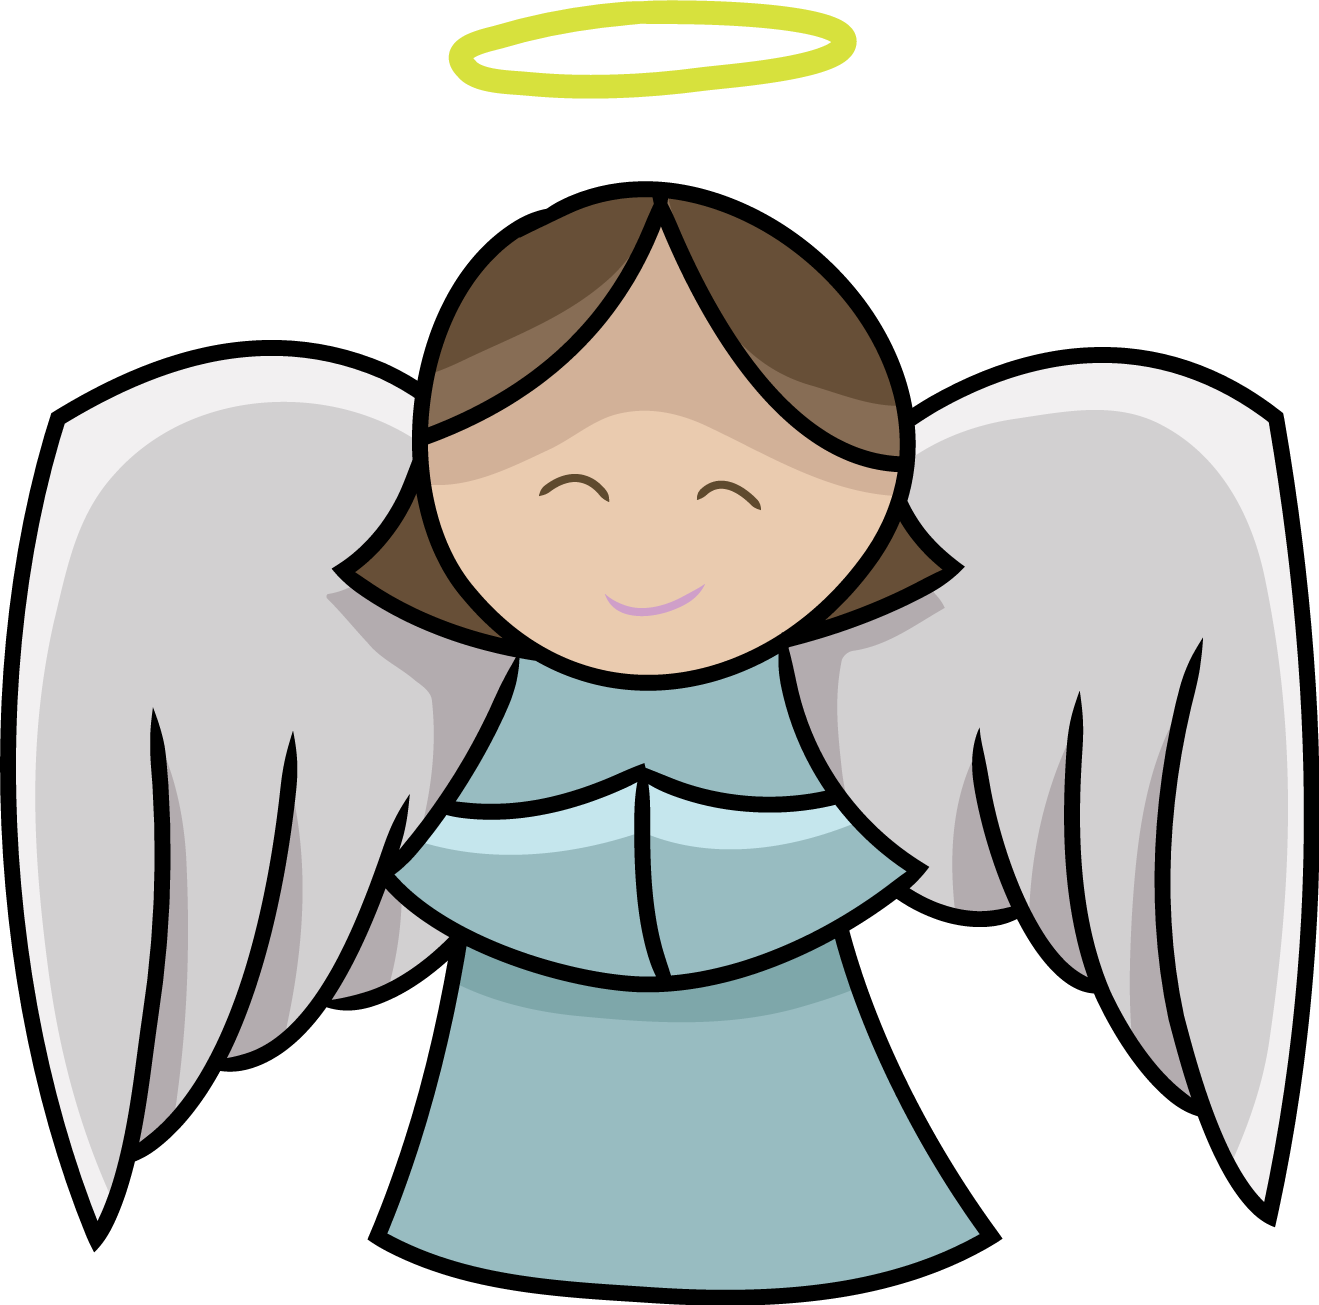 1319x1305 Angel Clip Art Free Cute amp Lovely Angel Clip Art Things to